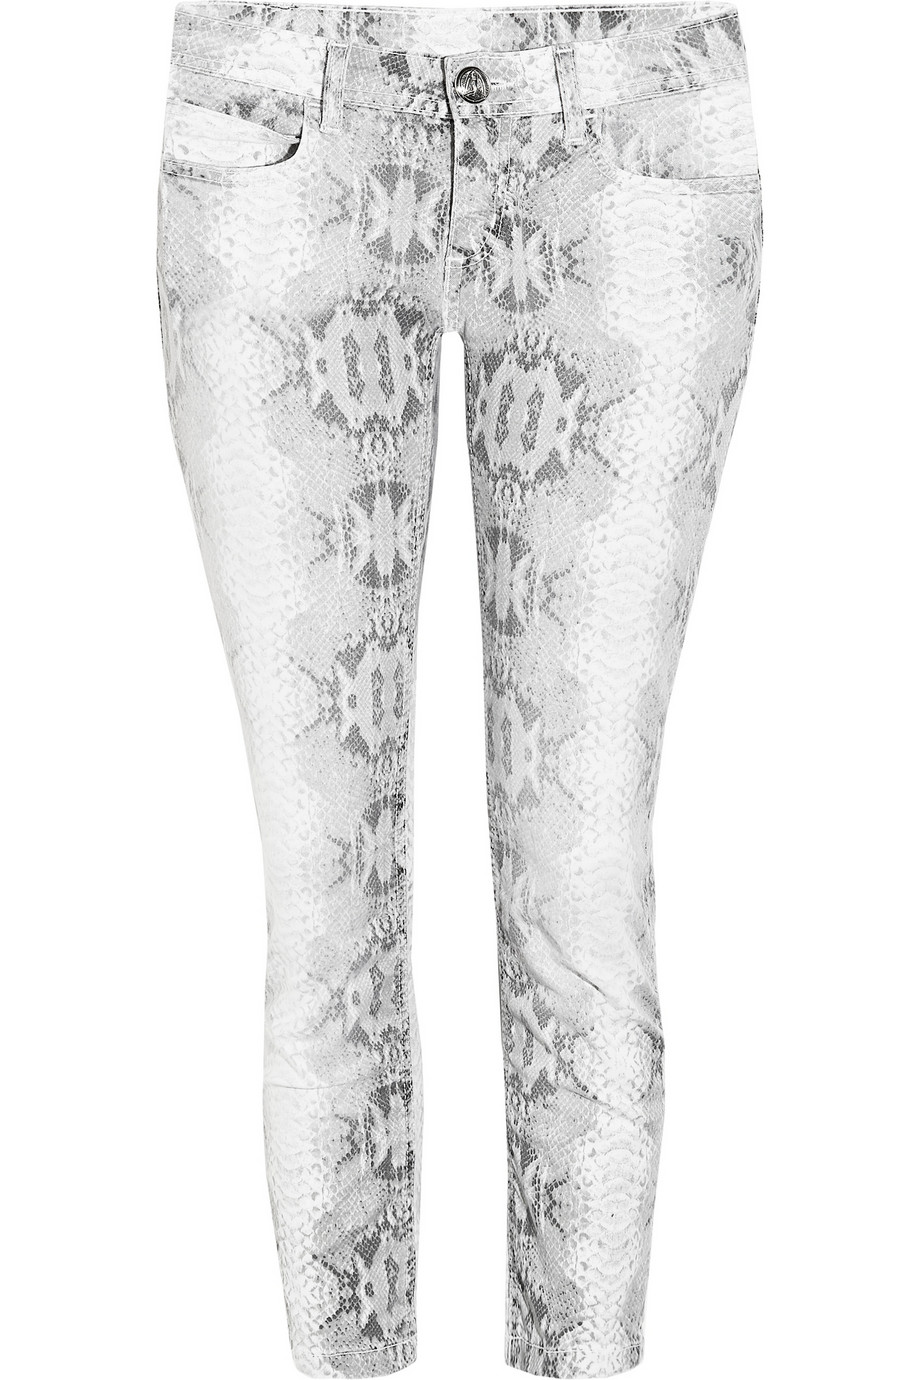 FAITH CONNEXION  snake print cropped skinny jeans